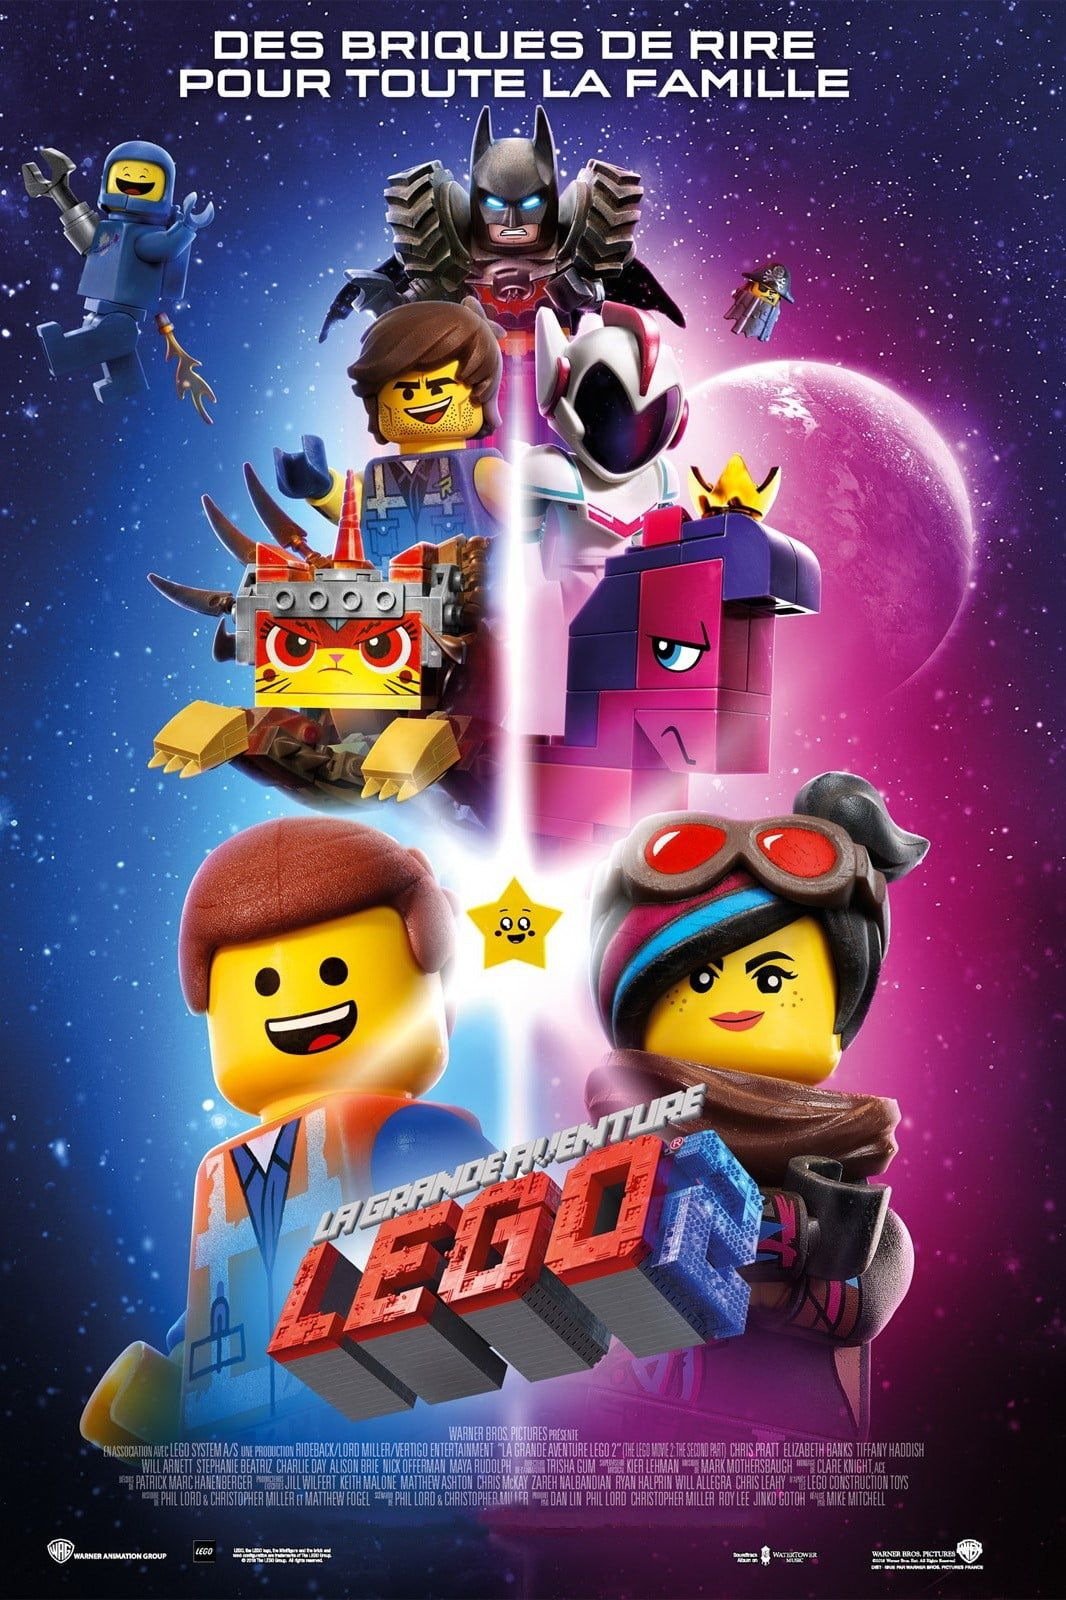 La Grande Aventure LEGO 2 - Long-métrage d'animation (2019) streaming VF gratuit complet